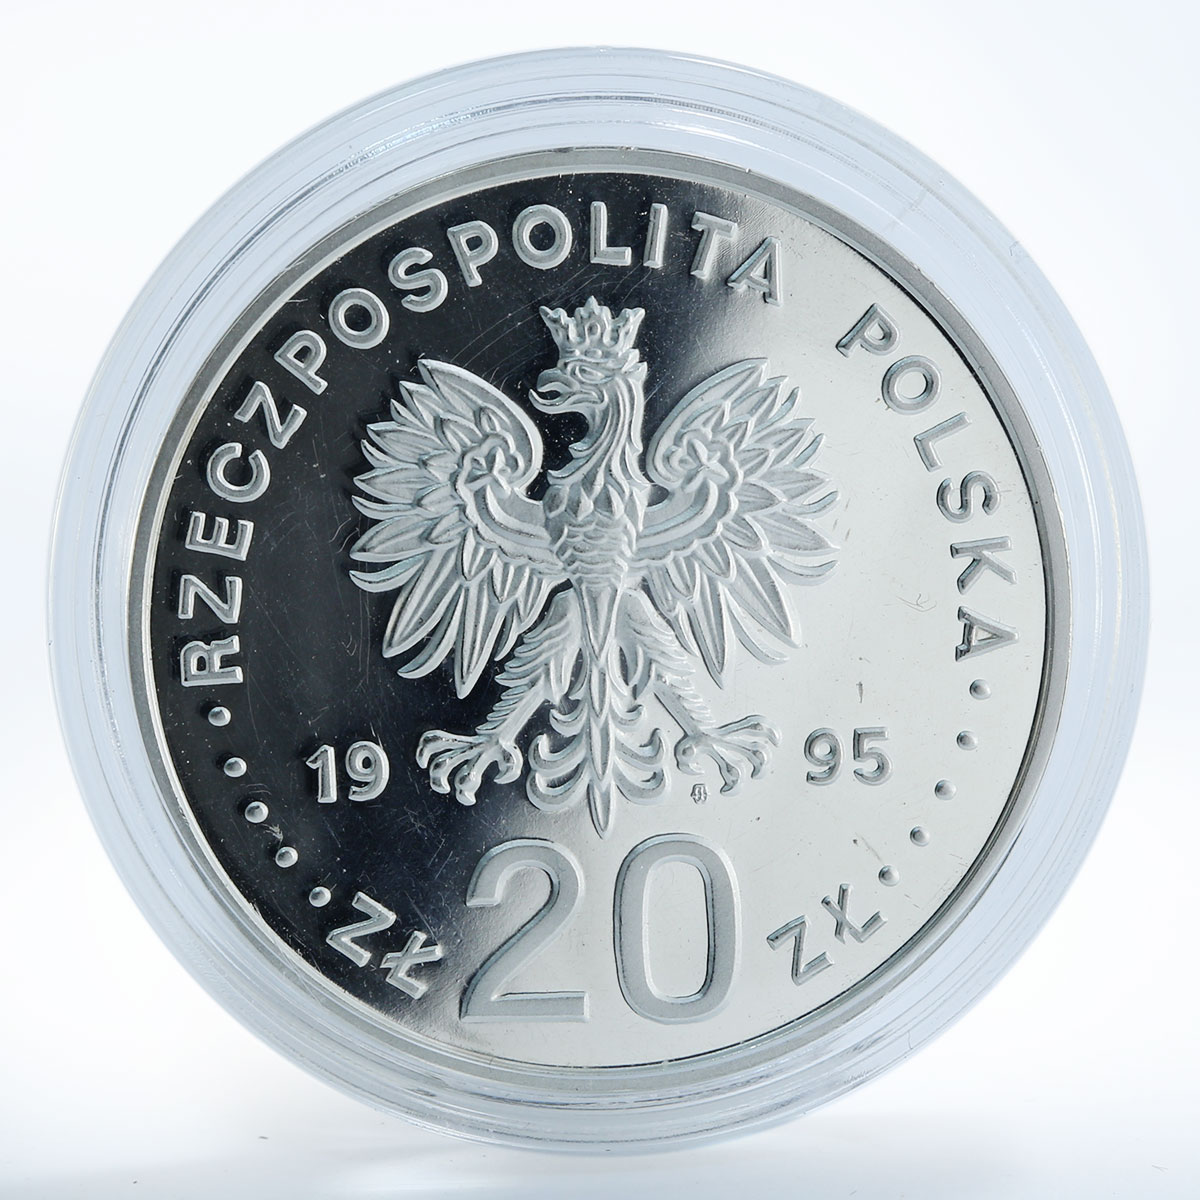 Poland 20 PLN 500 years of Plock silver coin 1995